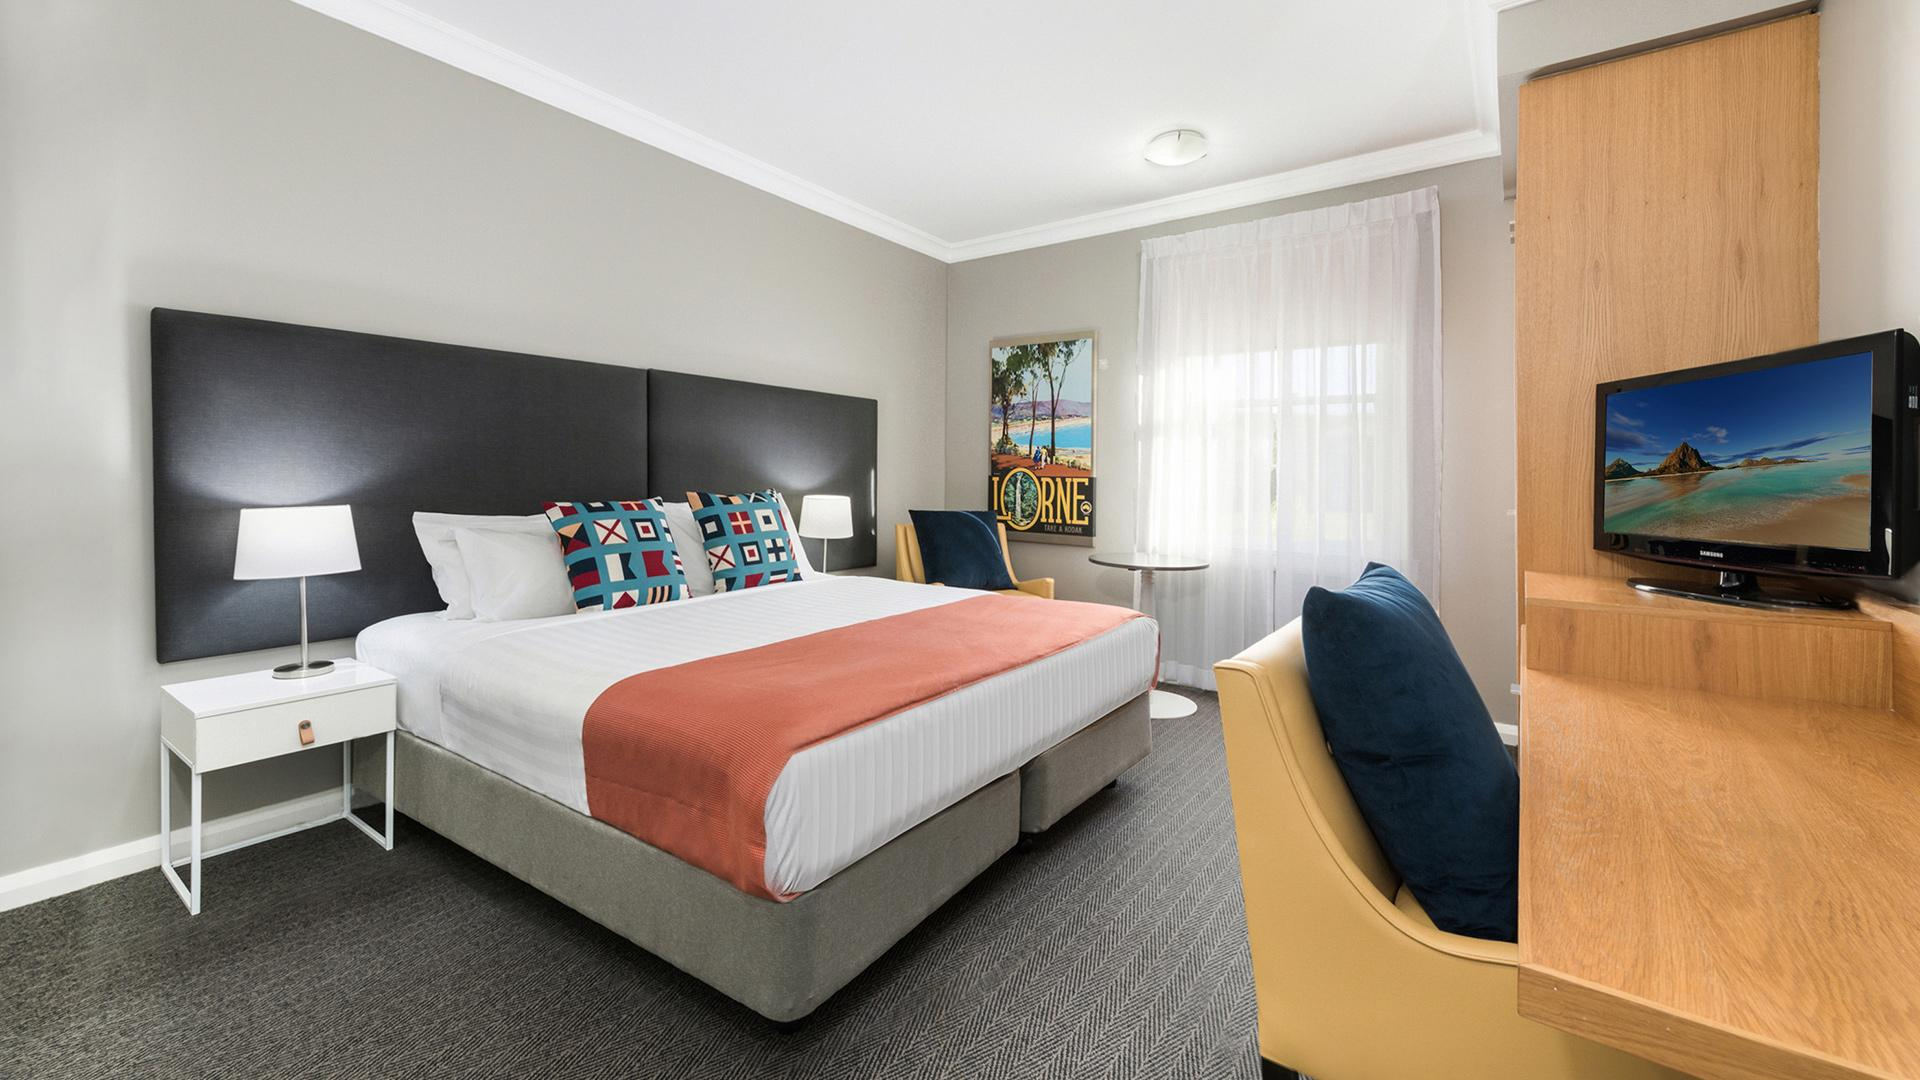 Heritage Room image 1 at Mantra Lorne by Surf Coast Shire, Victoria, Australia